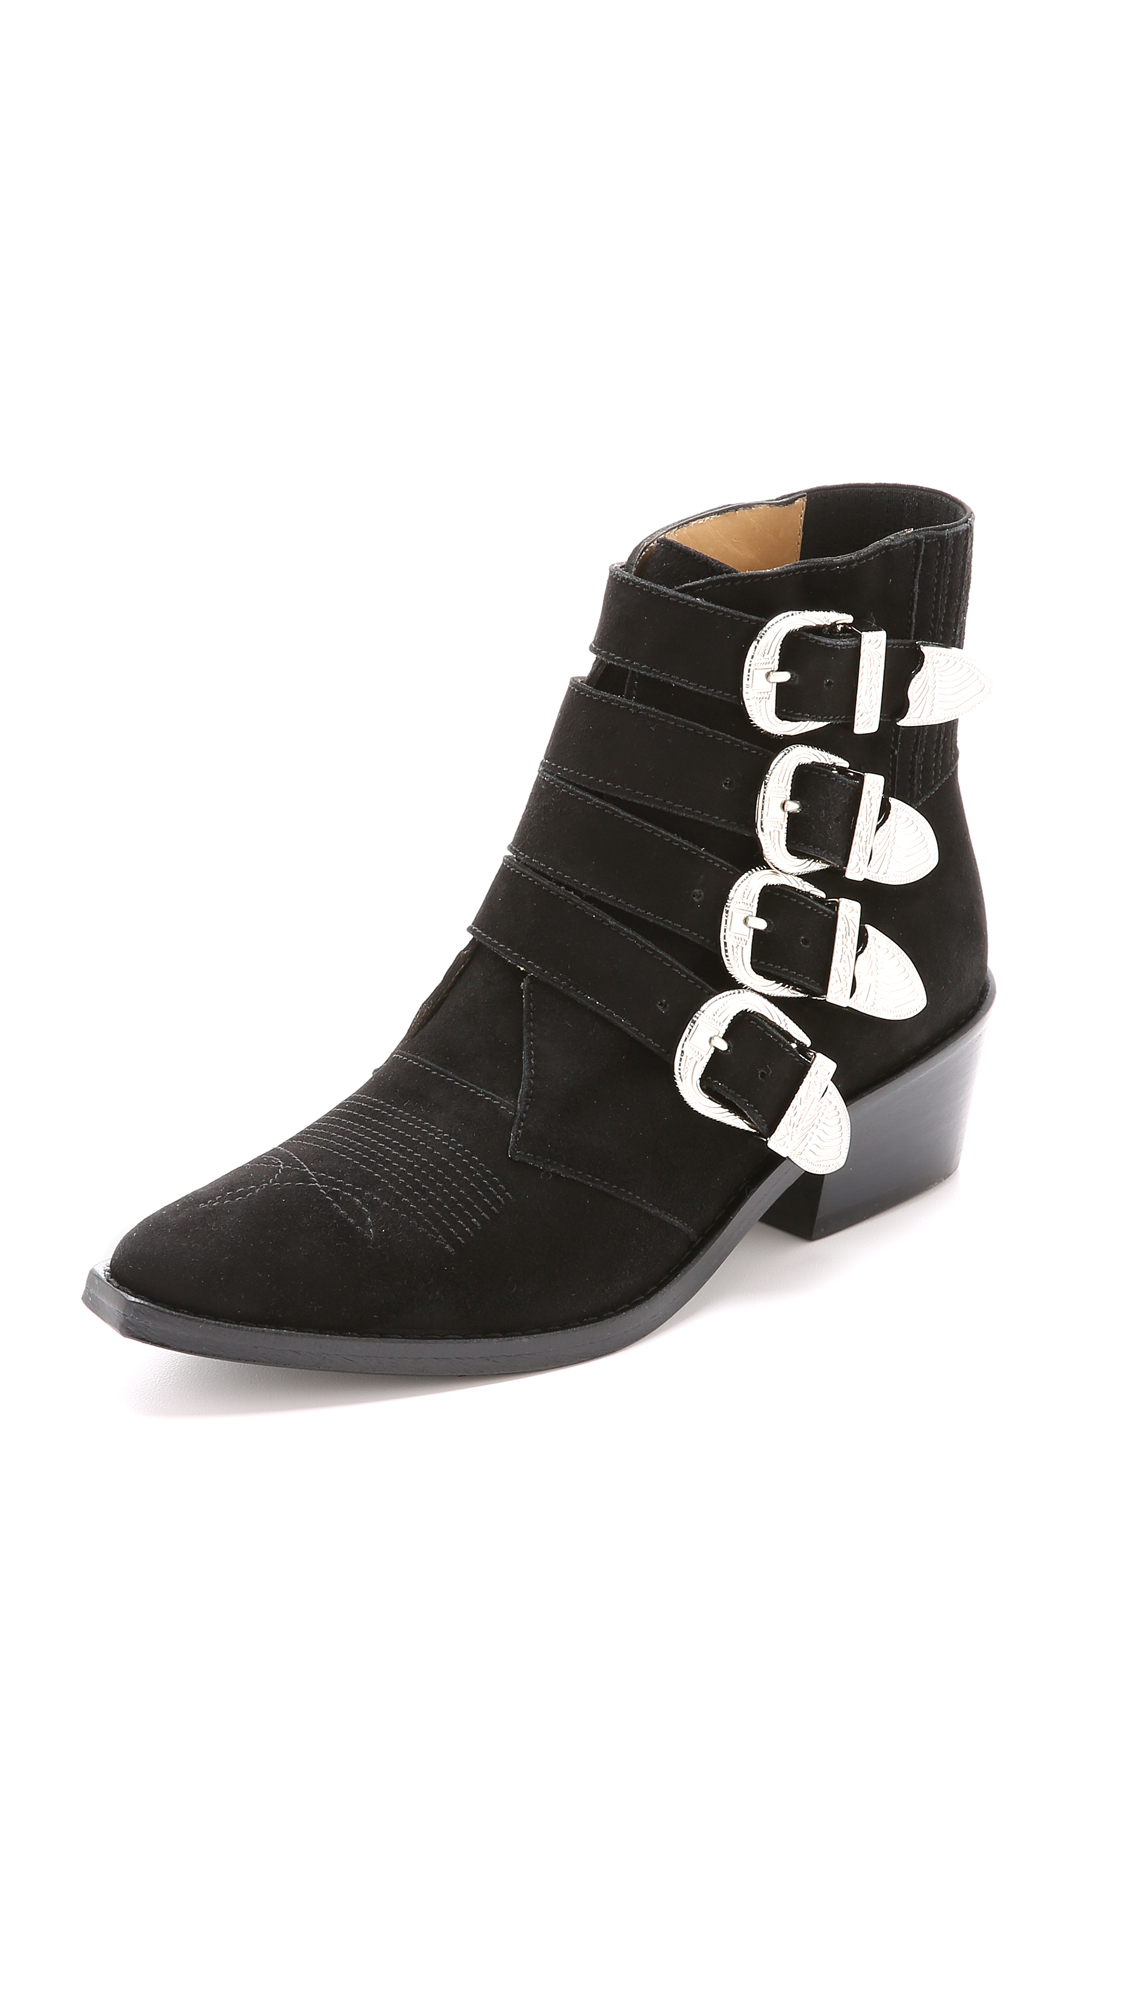 Toga Pulla Buckled Suede Booties - Black